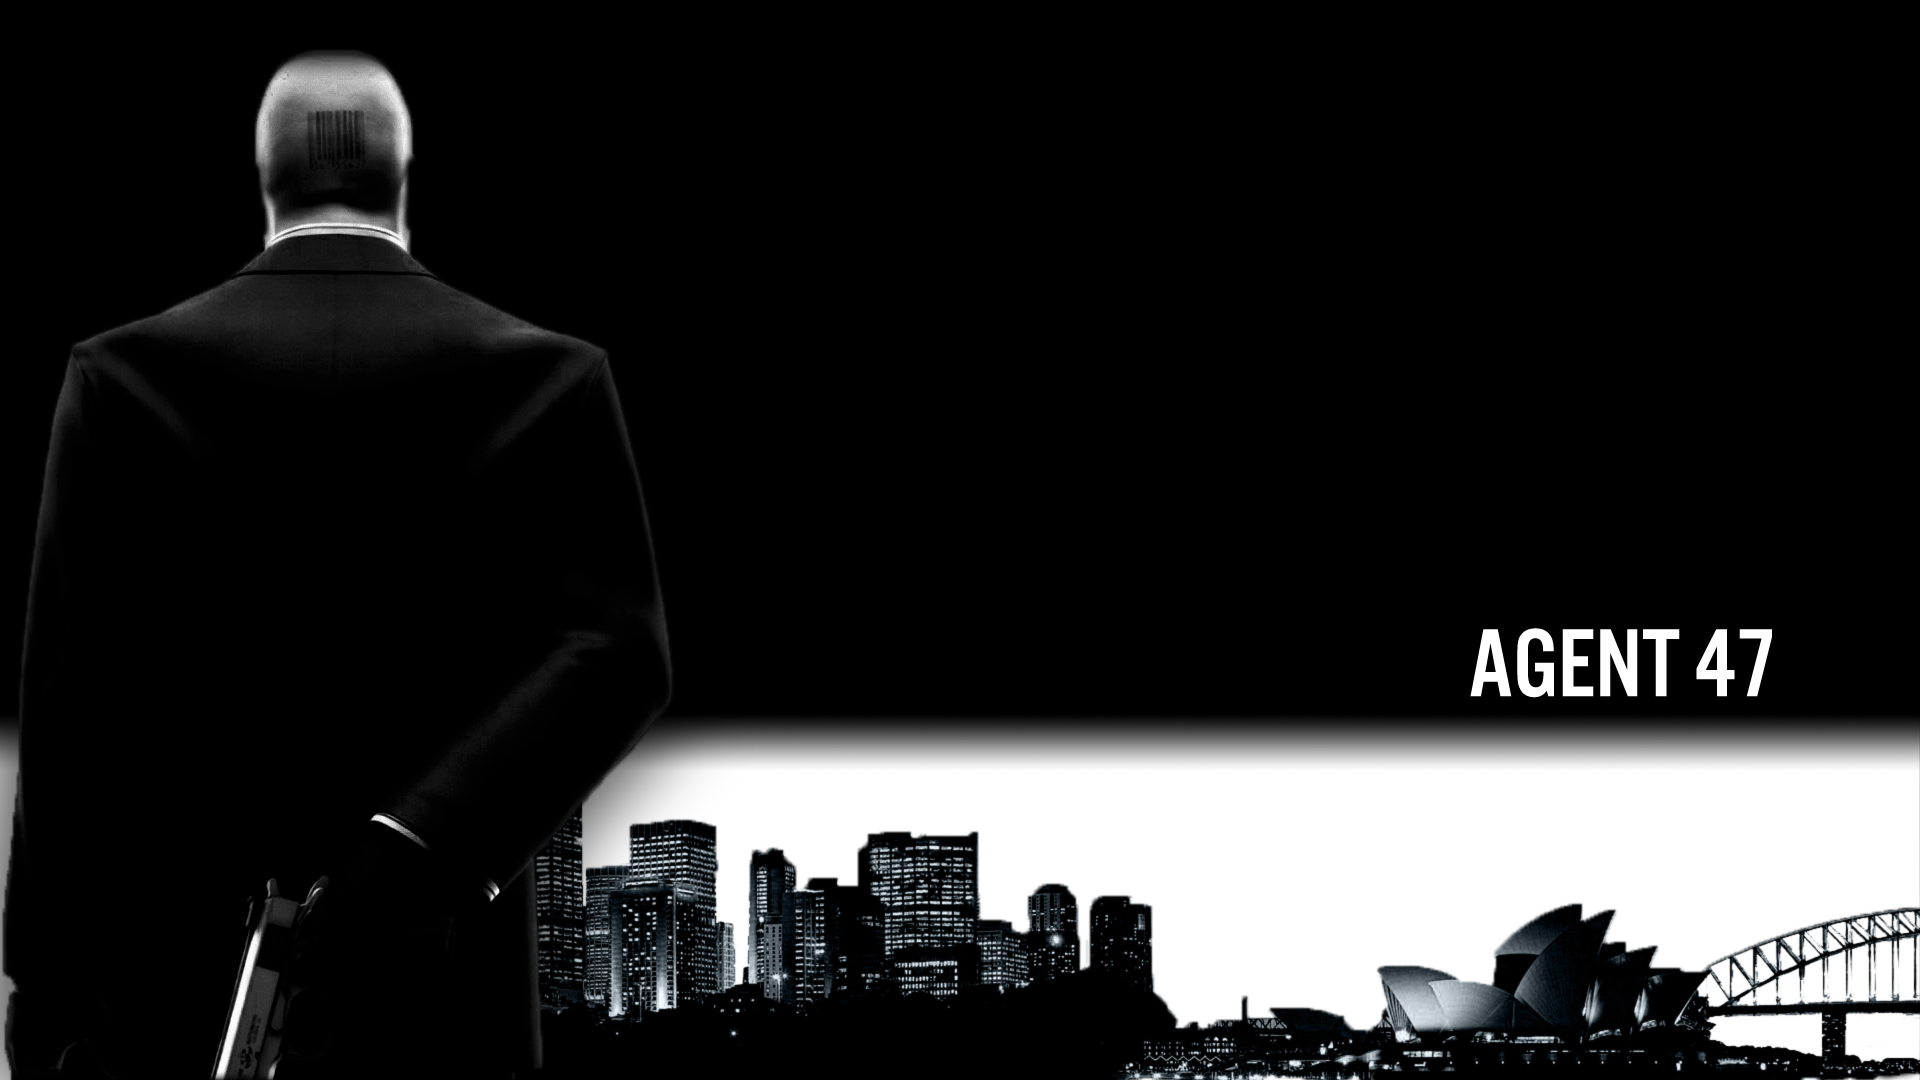 Agent 47 wallpaper variant 2 by drfillyblunt on deviantart - Agent 47 wallpaper ...